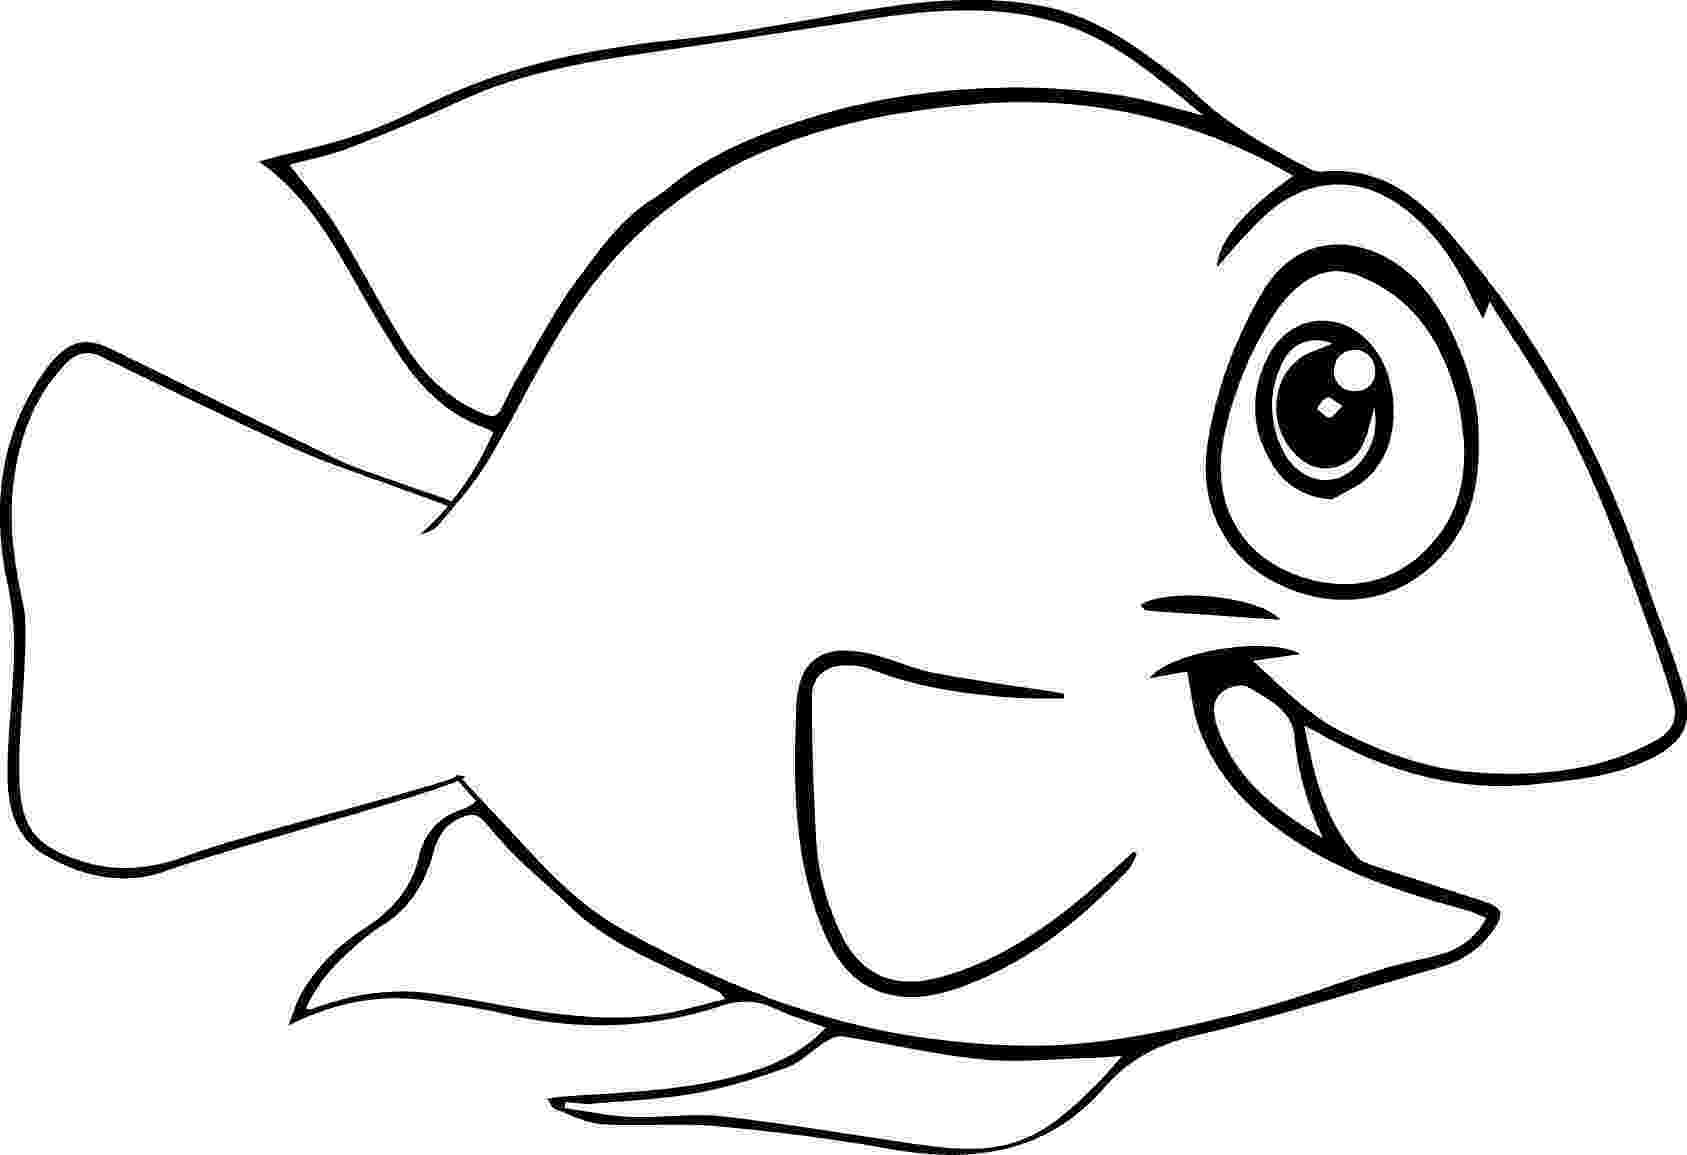 fish cartoon coloring pages under the sea coloring page coloring book cartoon coloring fish pages